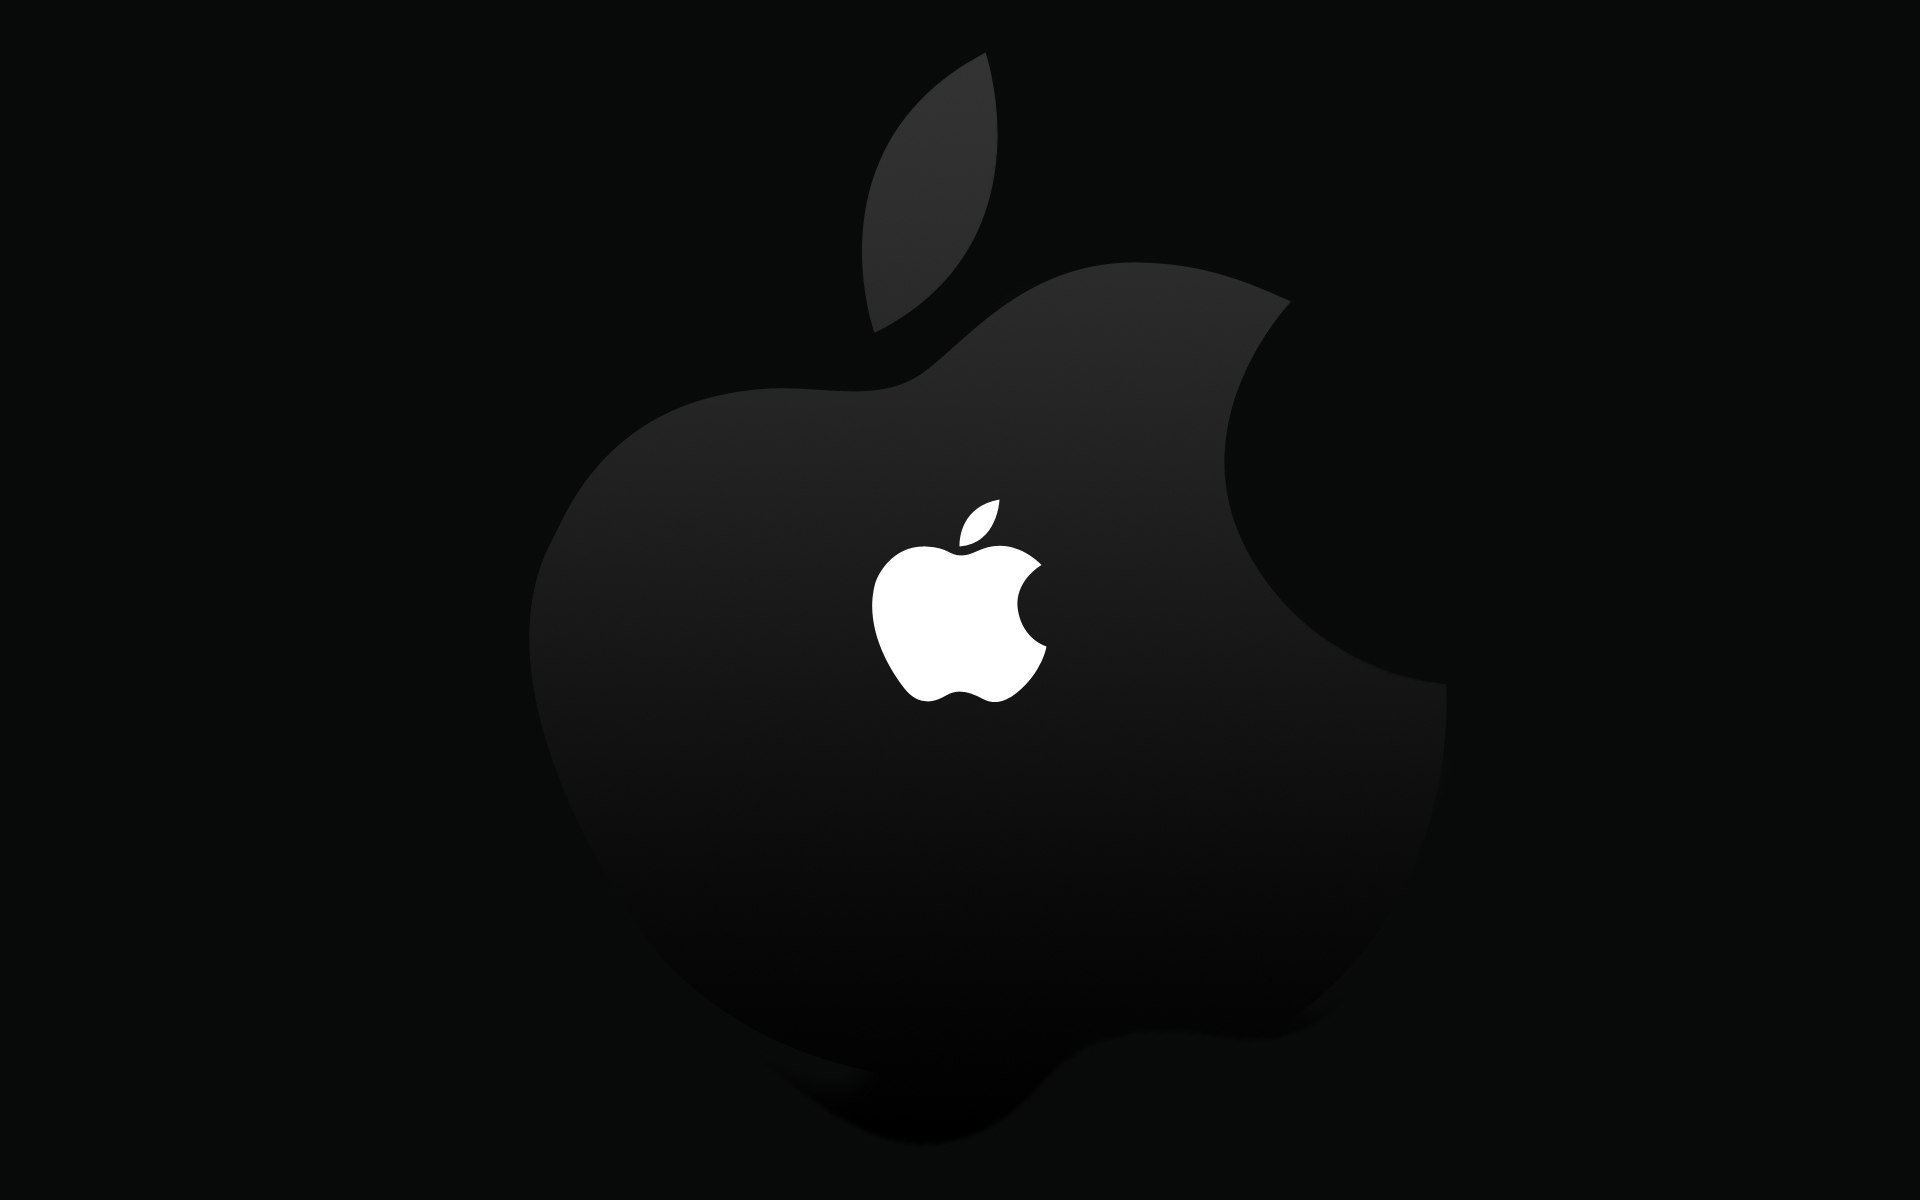 Apple logo background Wallpaper